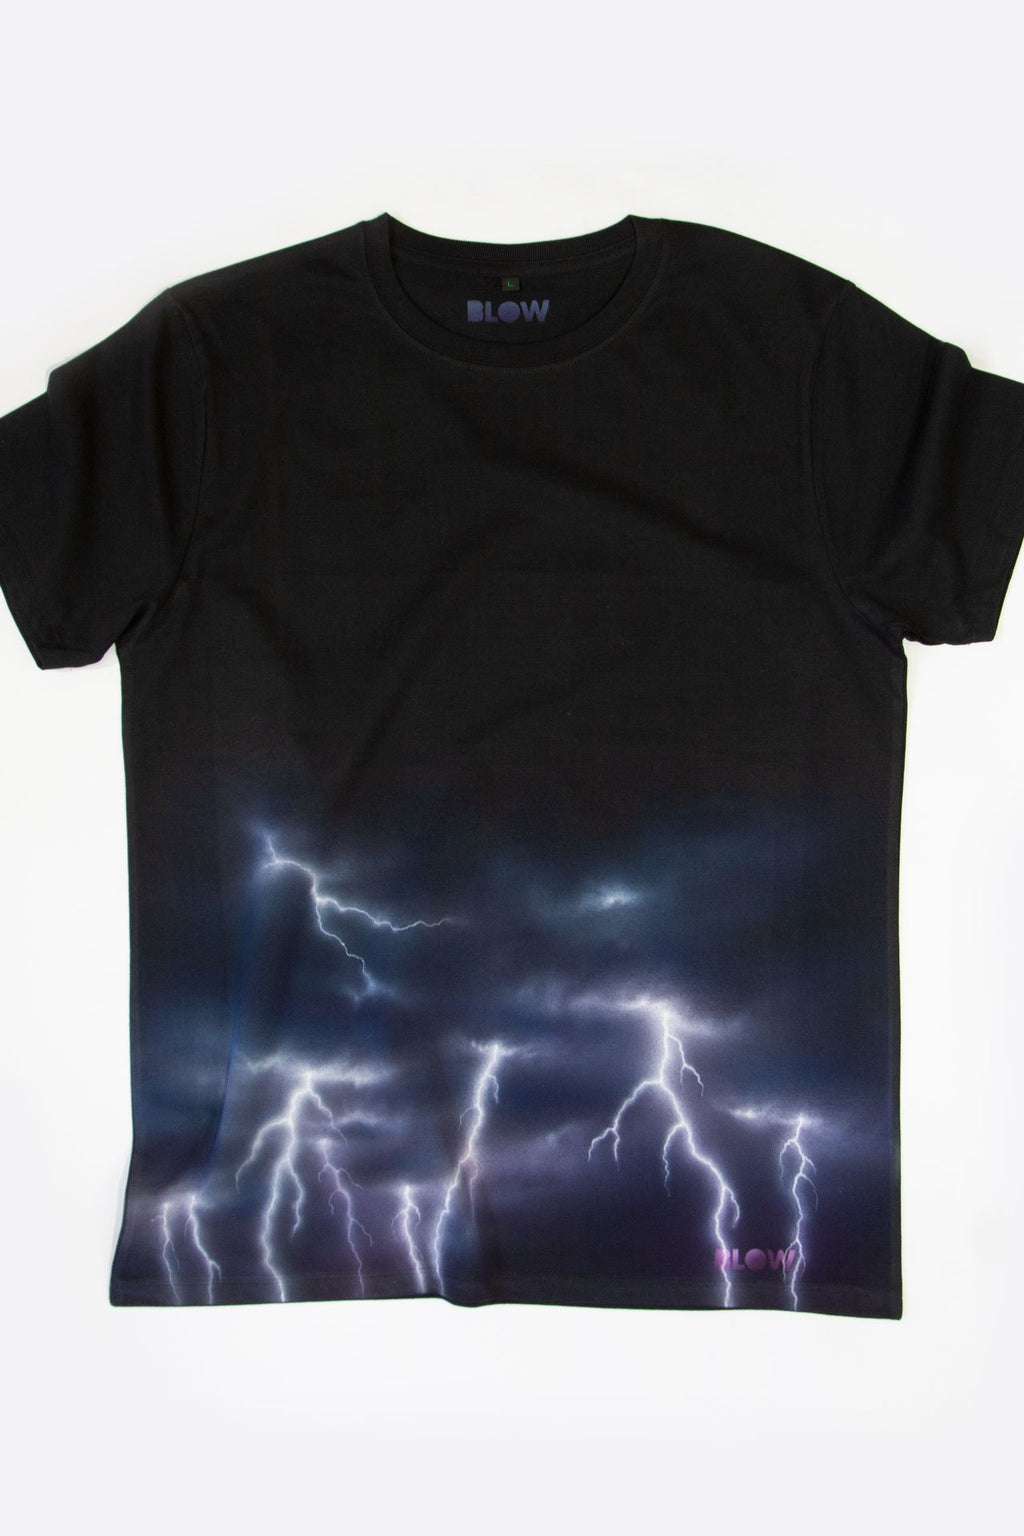 ELECTRIC STORM (BLK) - Unisex premium short sleeve t-shirt